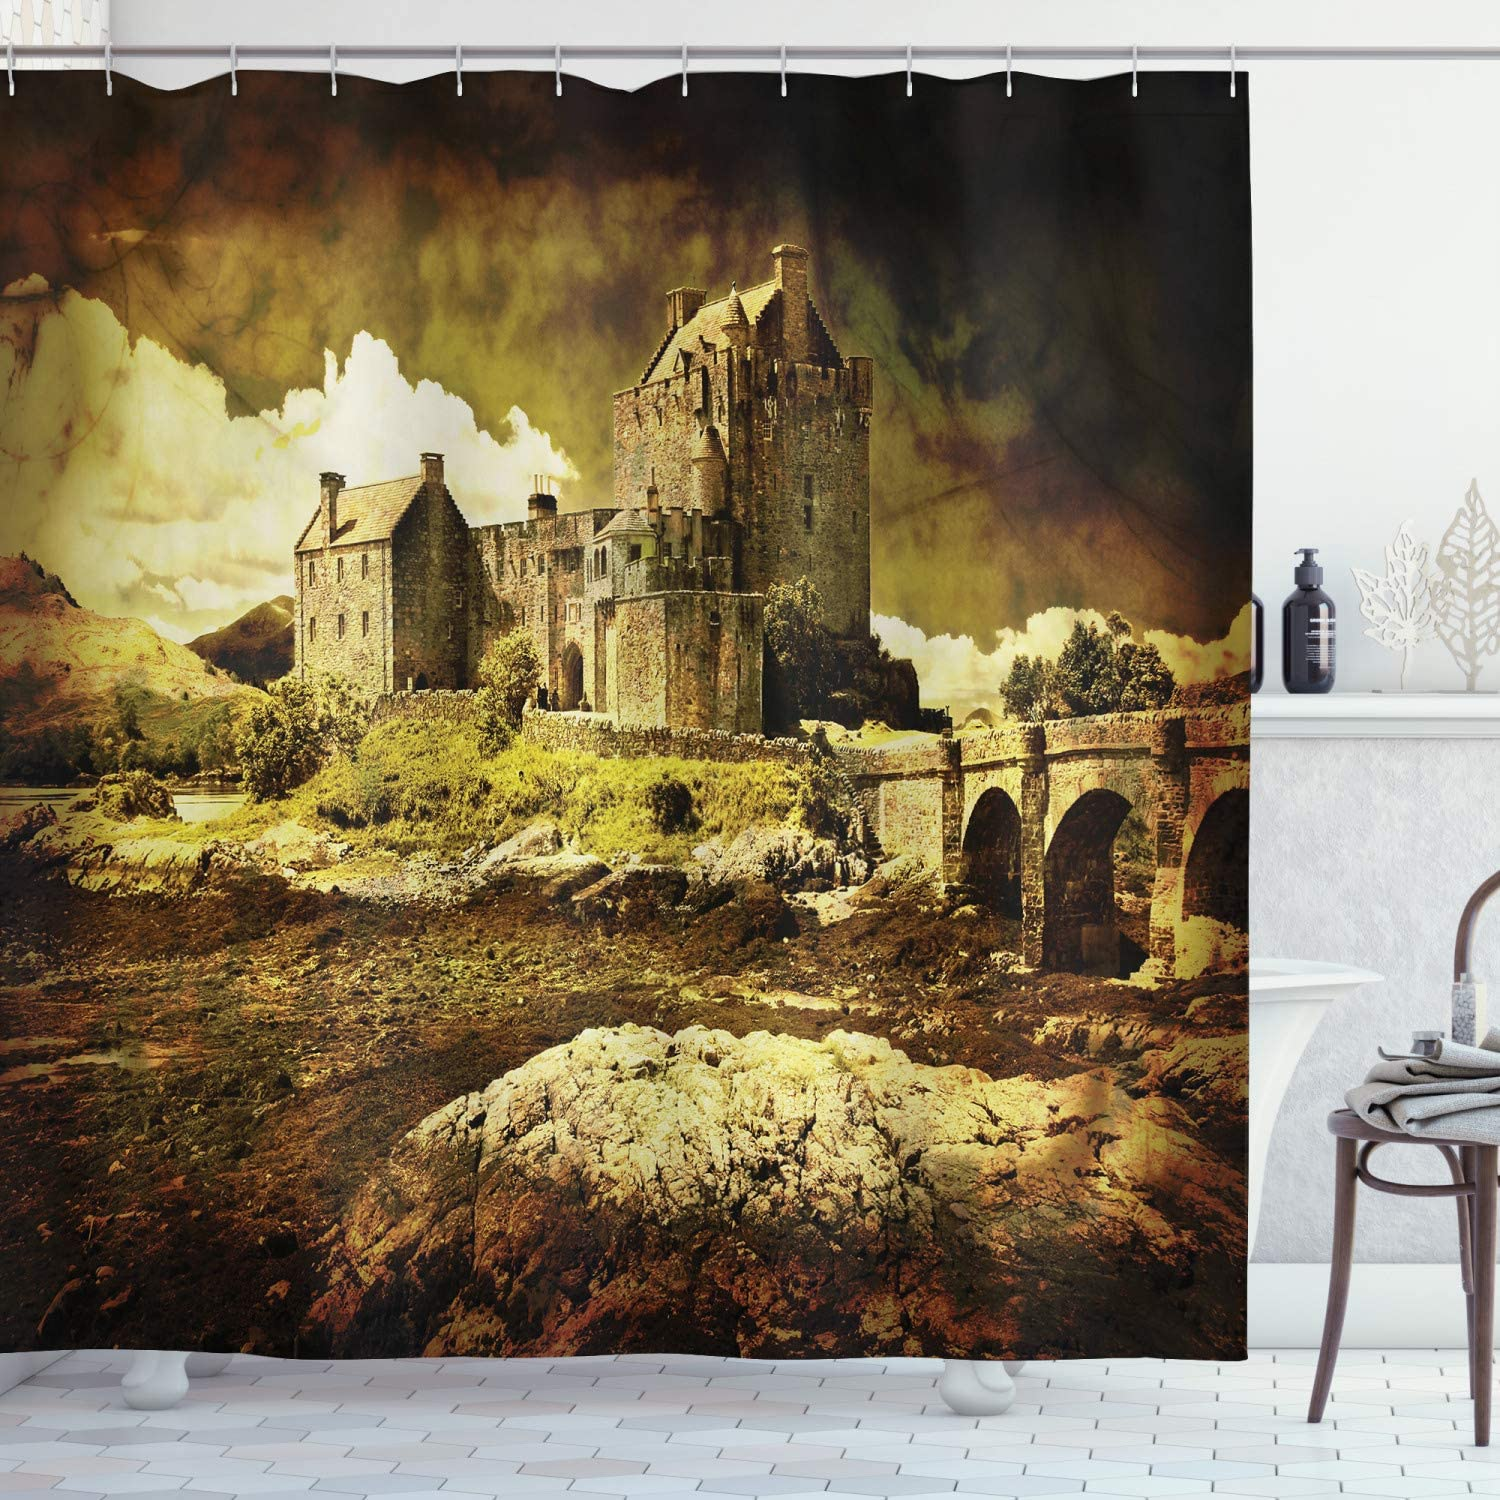 Ambesonne Medieval Shower Curtain, Old Scottish Castle Vintage Style European Middle Age Culture Heritage Town Photo, Cloth Fabric Bathroom Decor Set with Hooks, 84